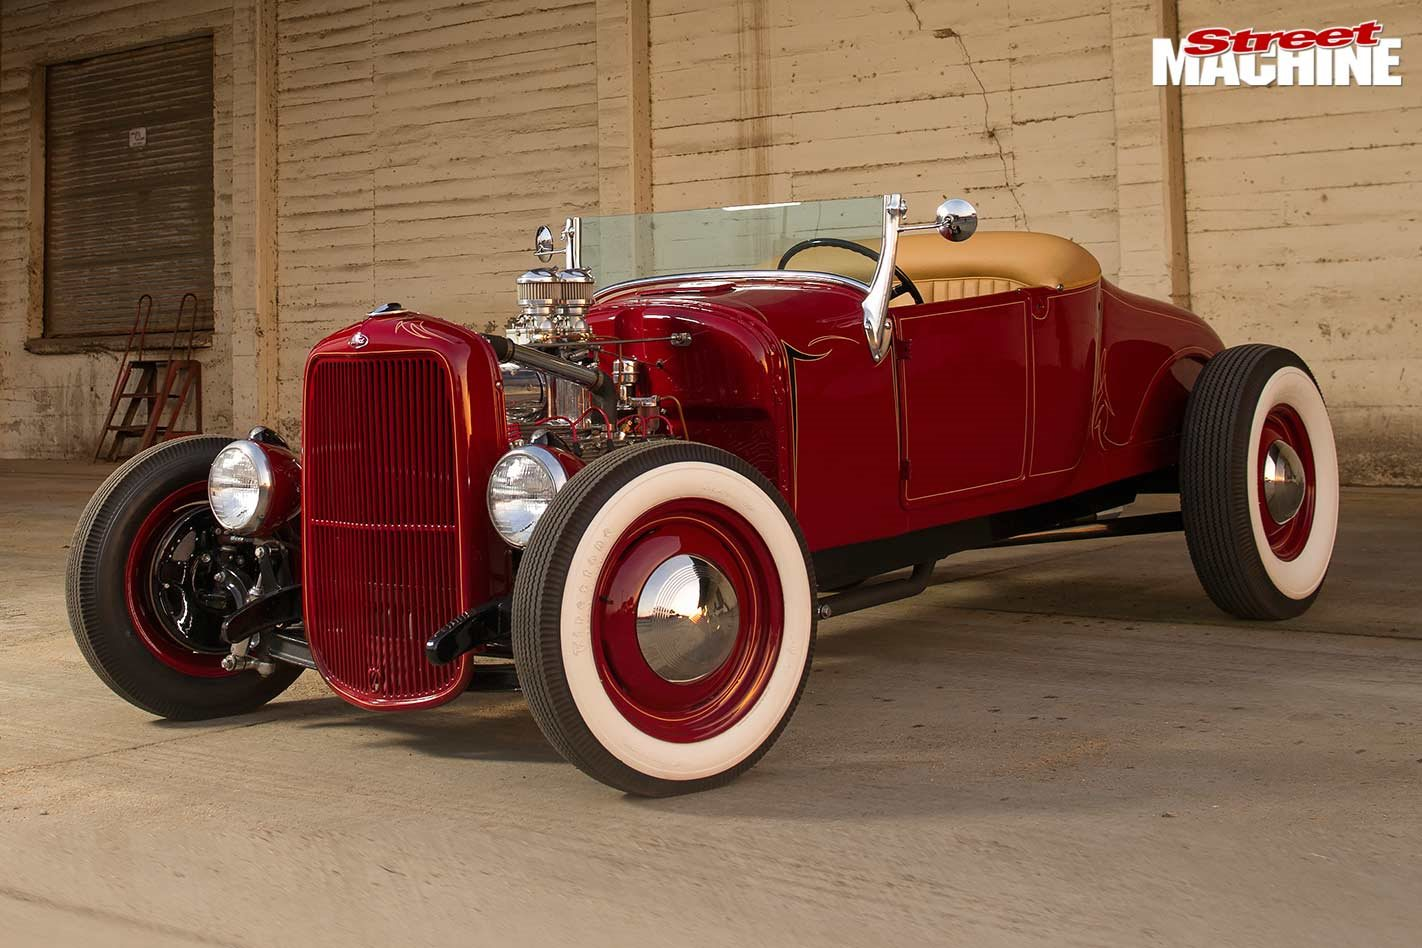 Flathead Powered 1927 Ford Model T Roadster